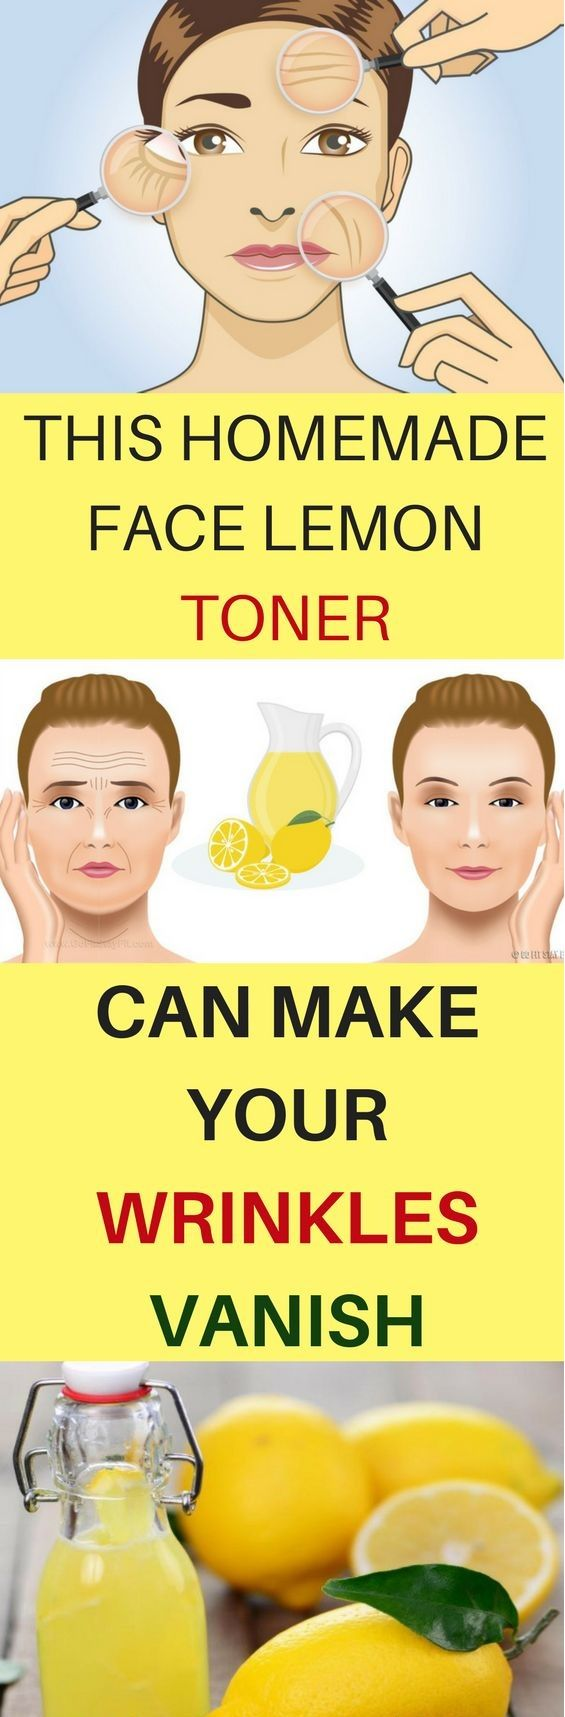 This Homemade Face Lemon Toner Can Make Your Wrinkles Vanish – Page 3 – We are introducing the Big Health Hut